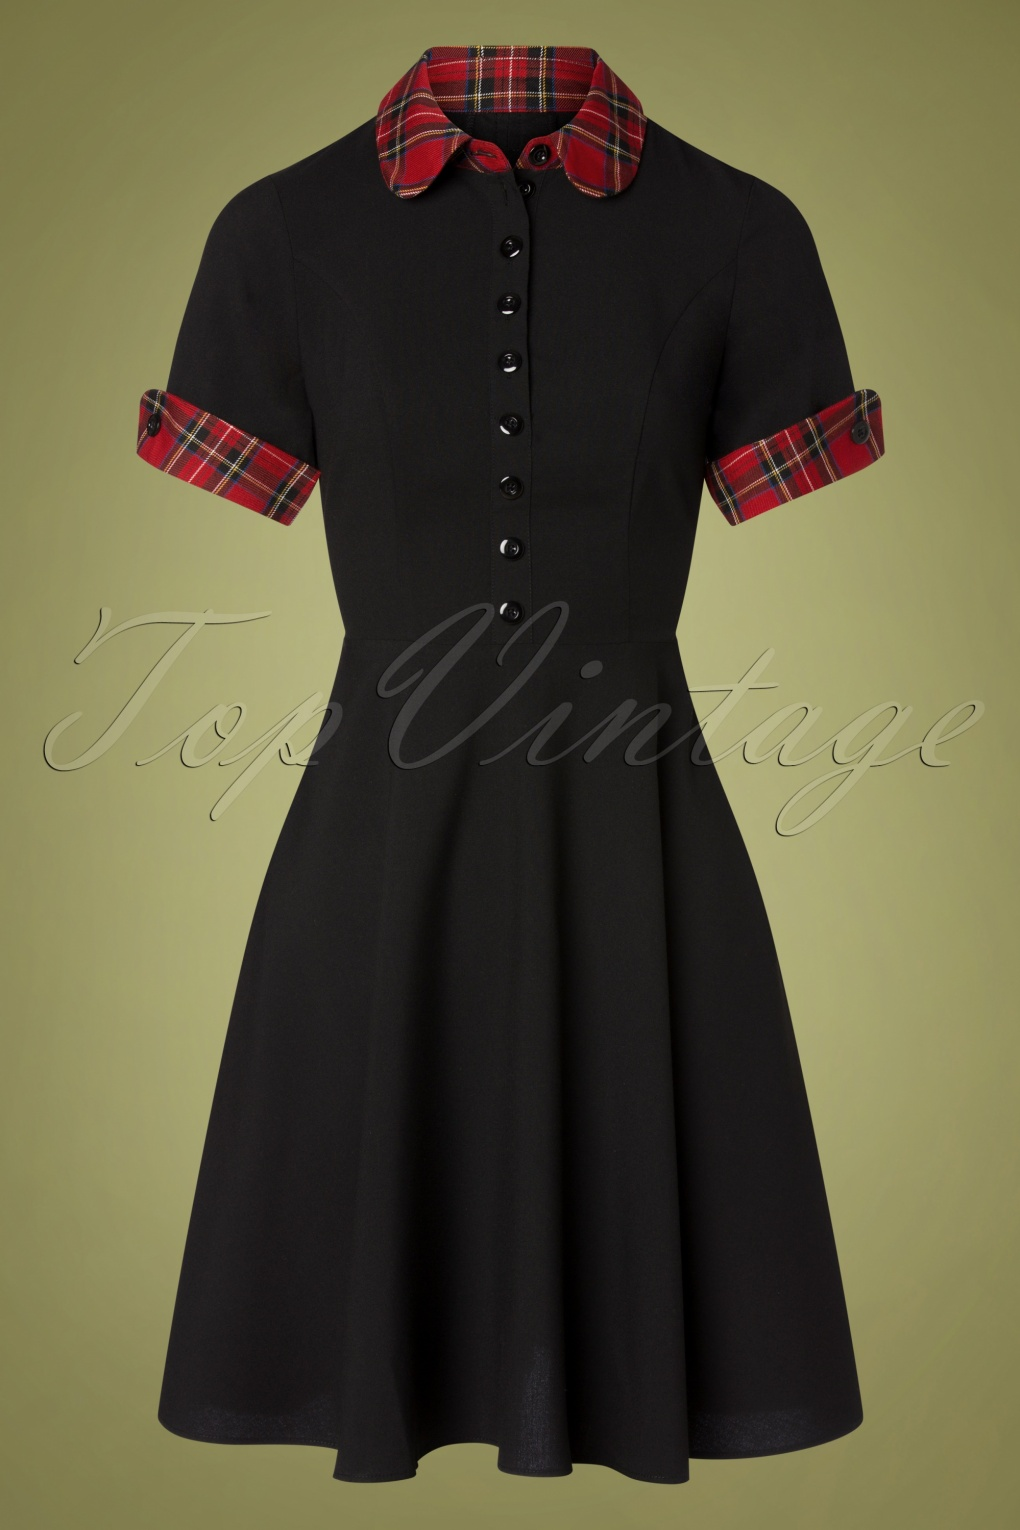 Vintage Shirtwaist Dress History 50s Tiddlywinks Dress in Black £64.64 AT vintagedancer.com